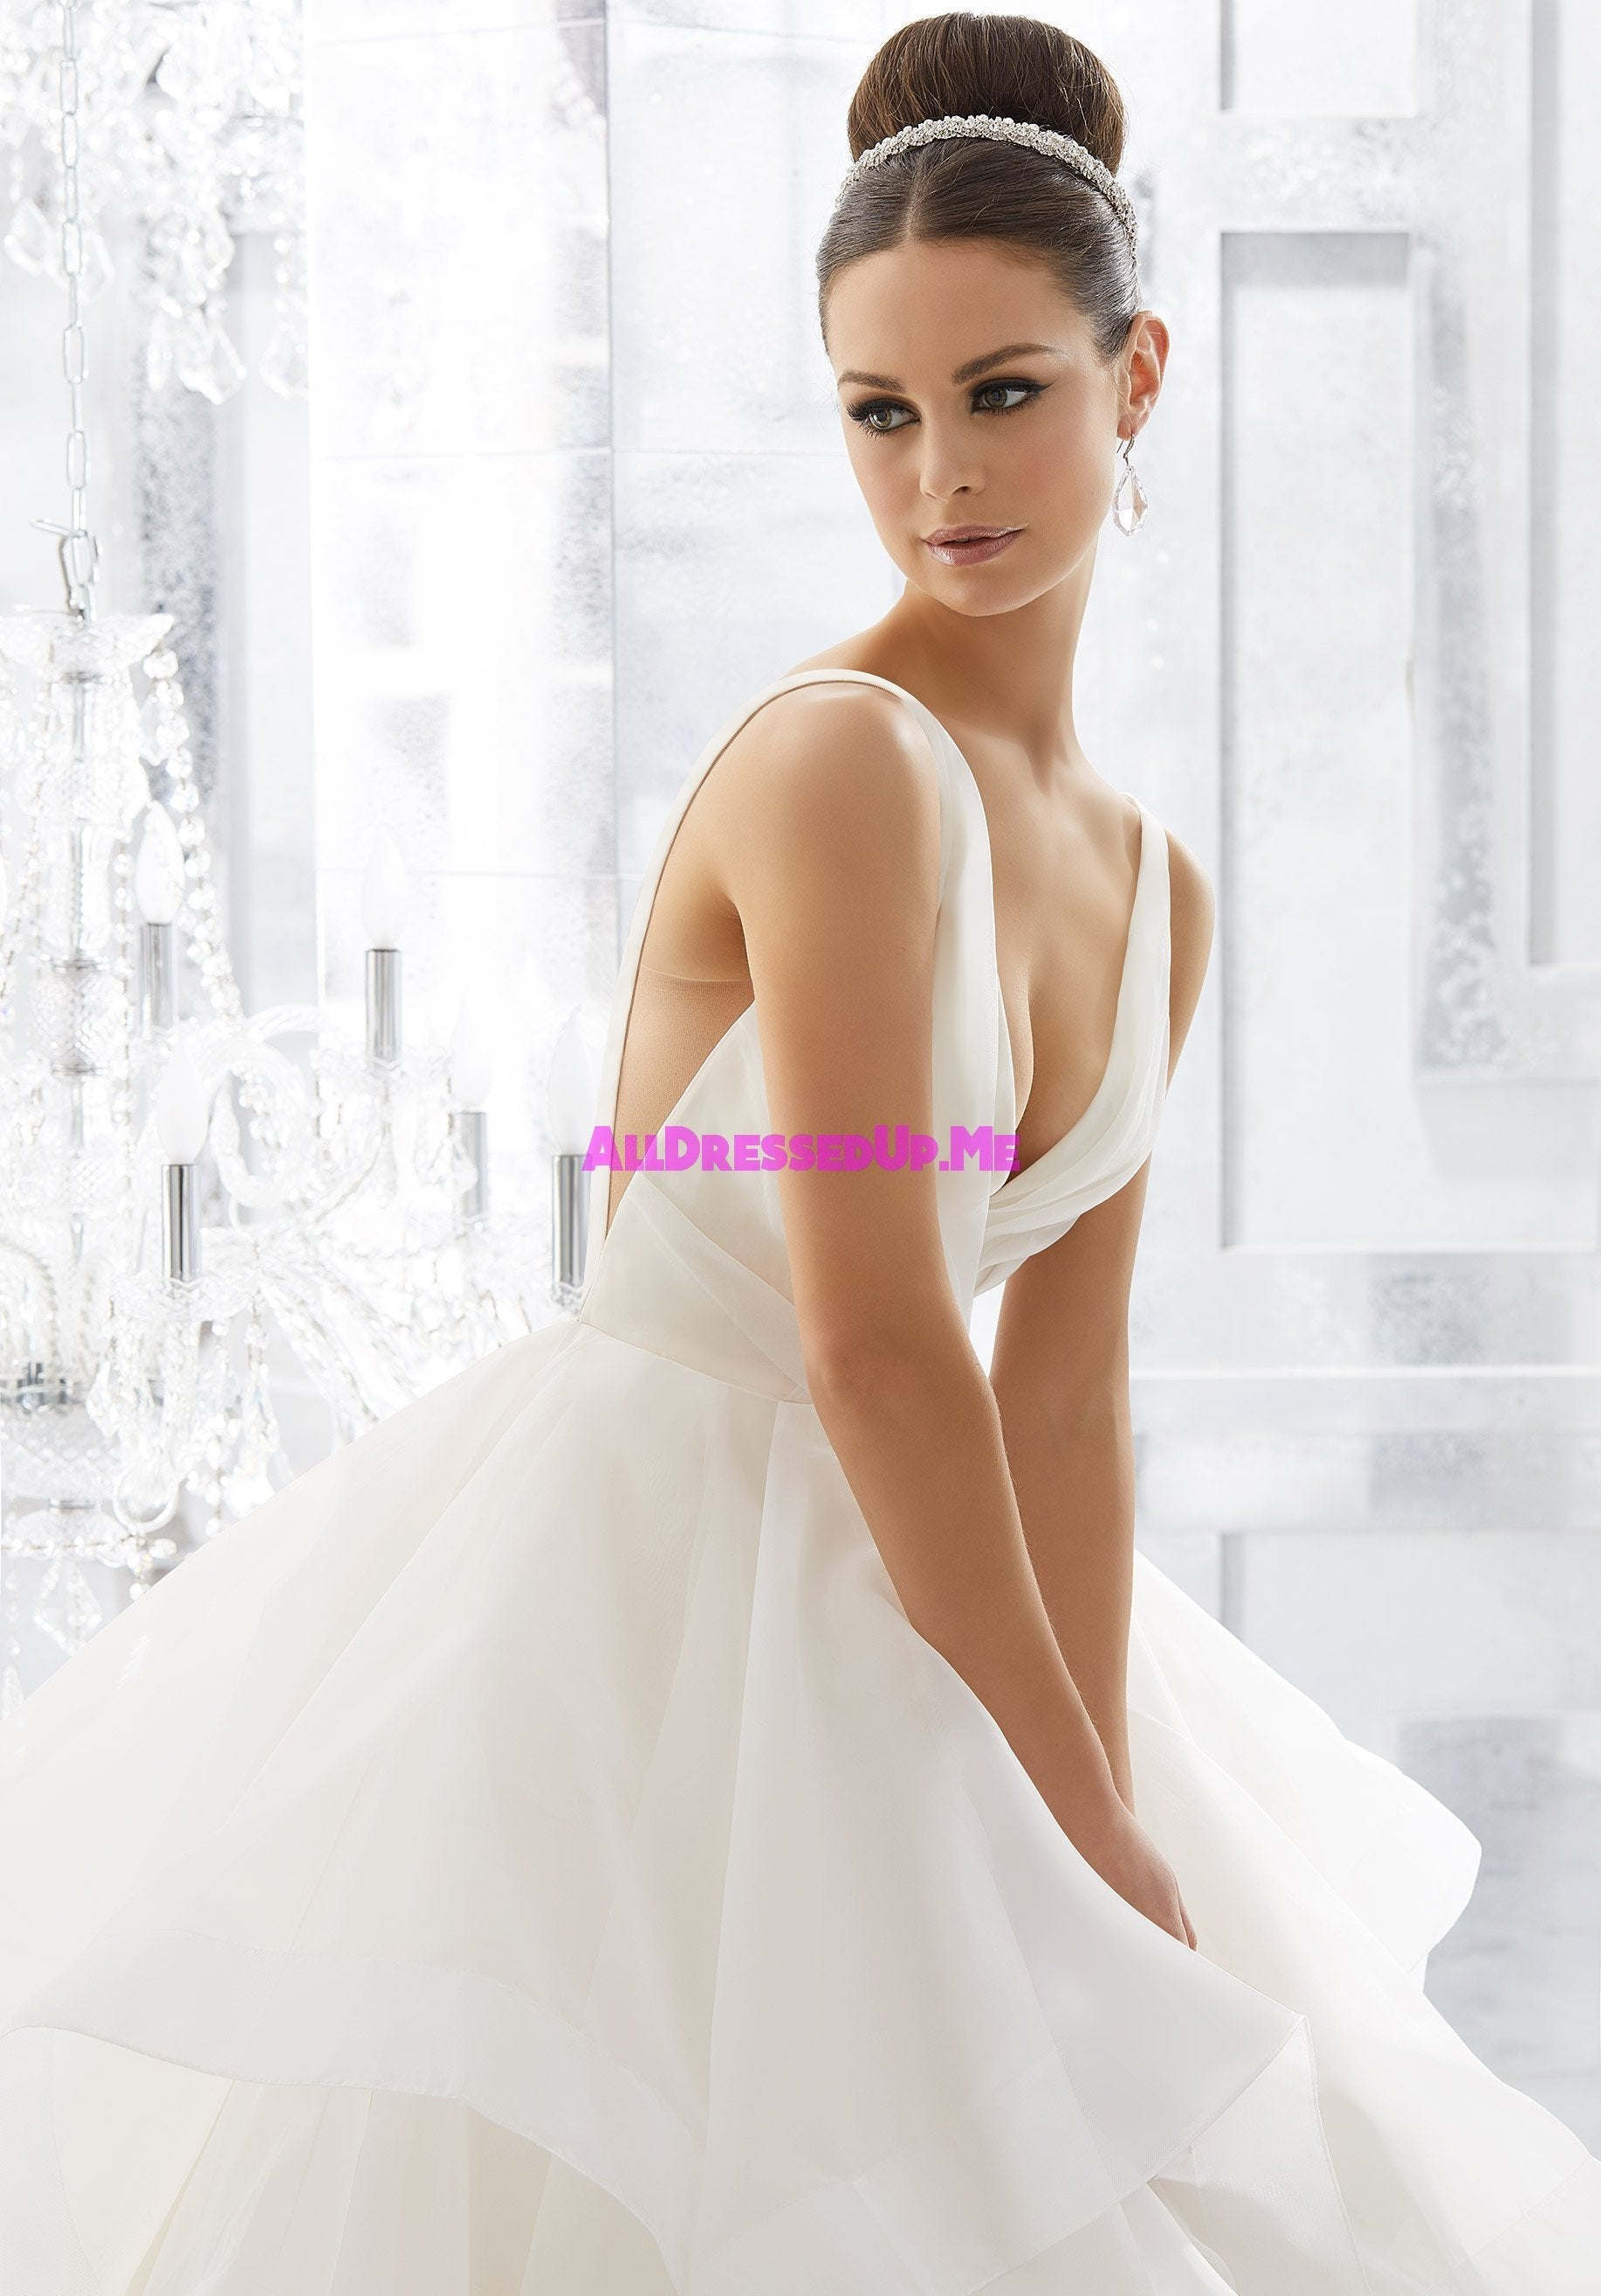 Blu - Milly - 5577 - All Dressed Up, Bridal Gown - All Dressed Up ...